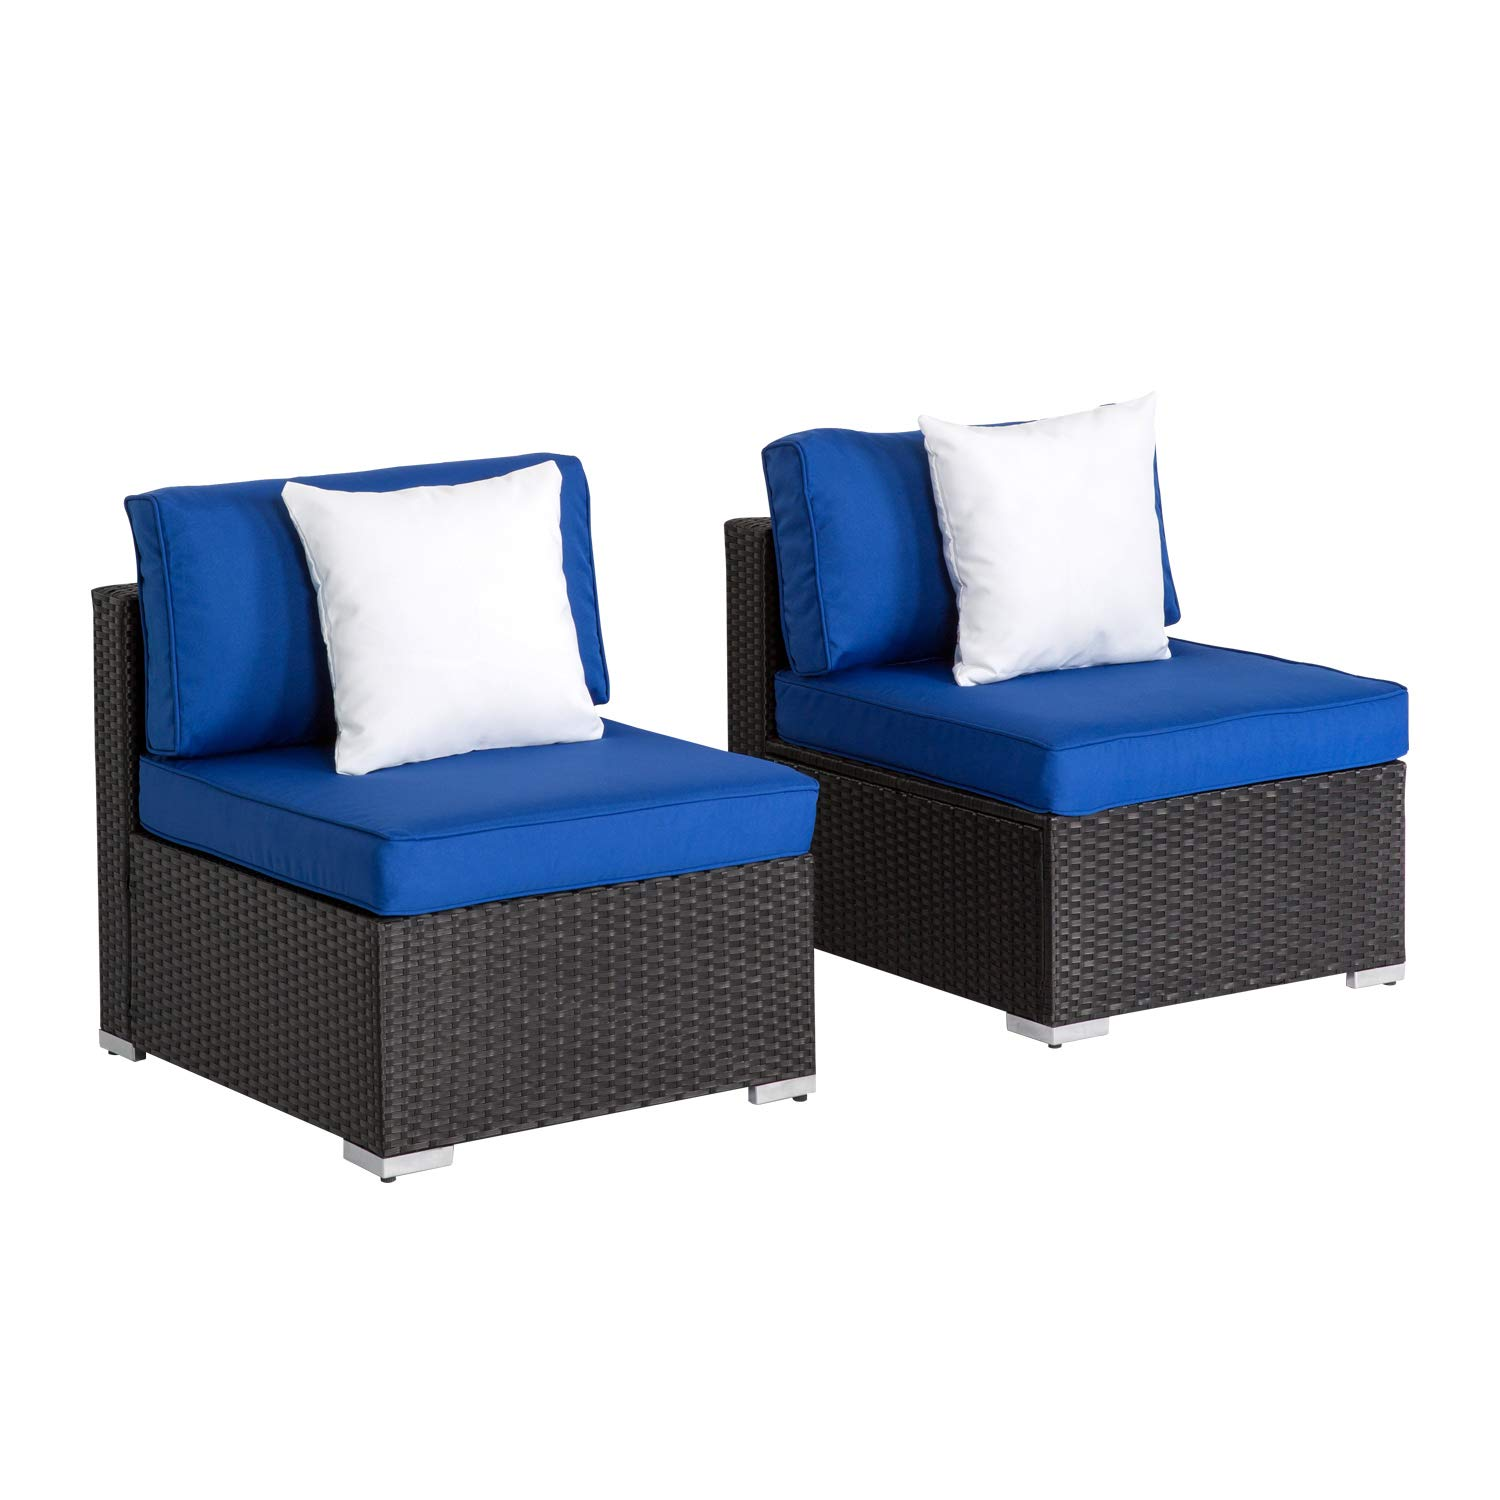 Kinbor Patio Loveseat Wicker Armless Chairs, All Weather Black PE Wicker Sofa Chair,Additional Seats for Sectional Sofa